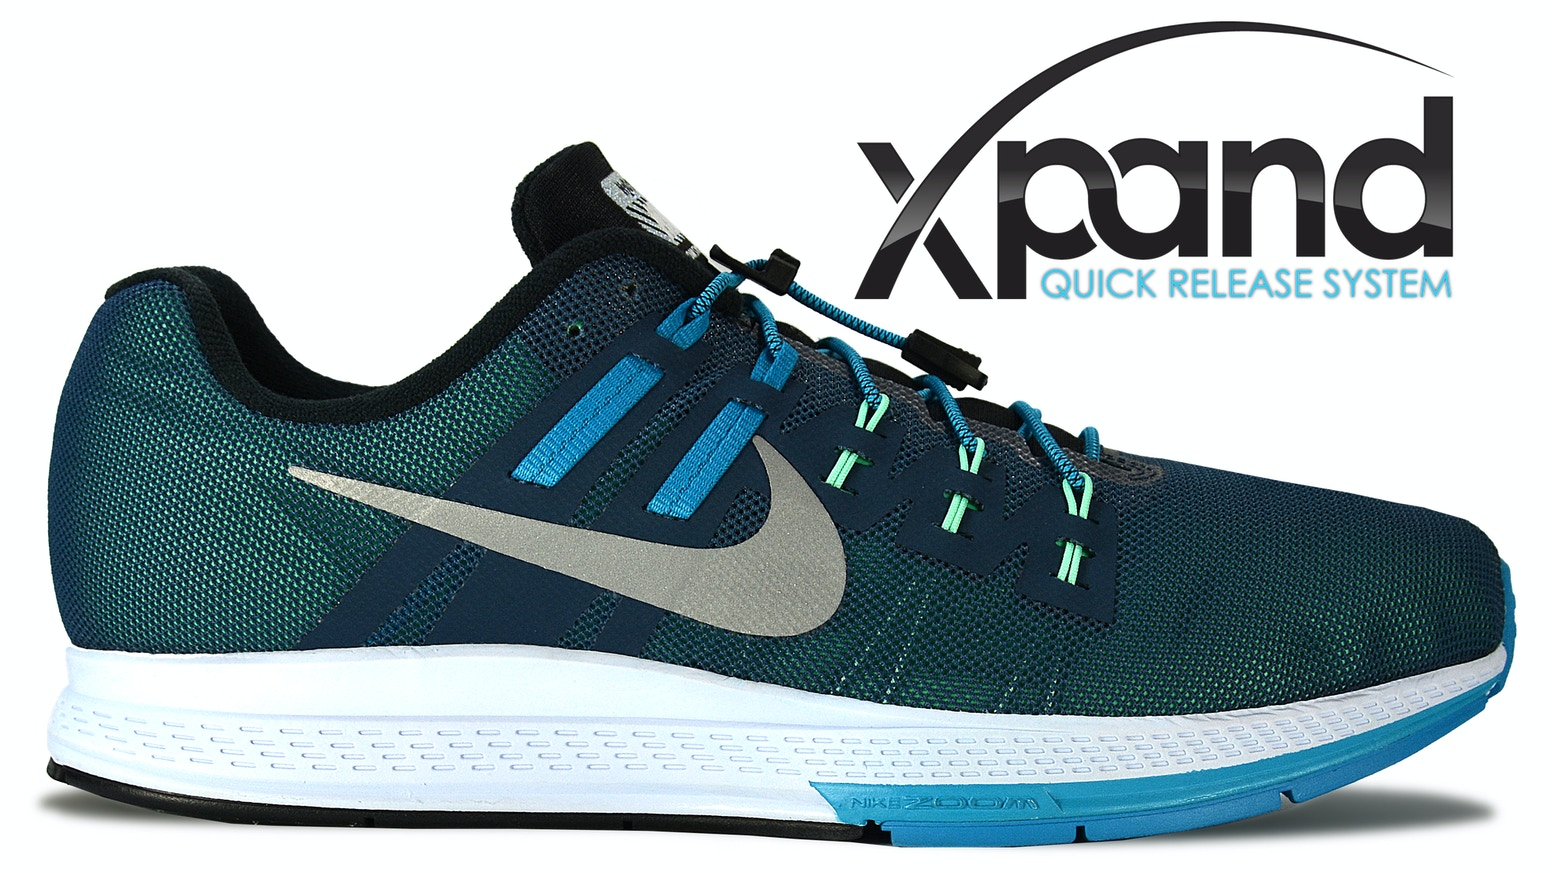 wholesale dealer 76eda 5a05b Shoes on in 3 seconds flat. No tie lacing system for runners, walkers,